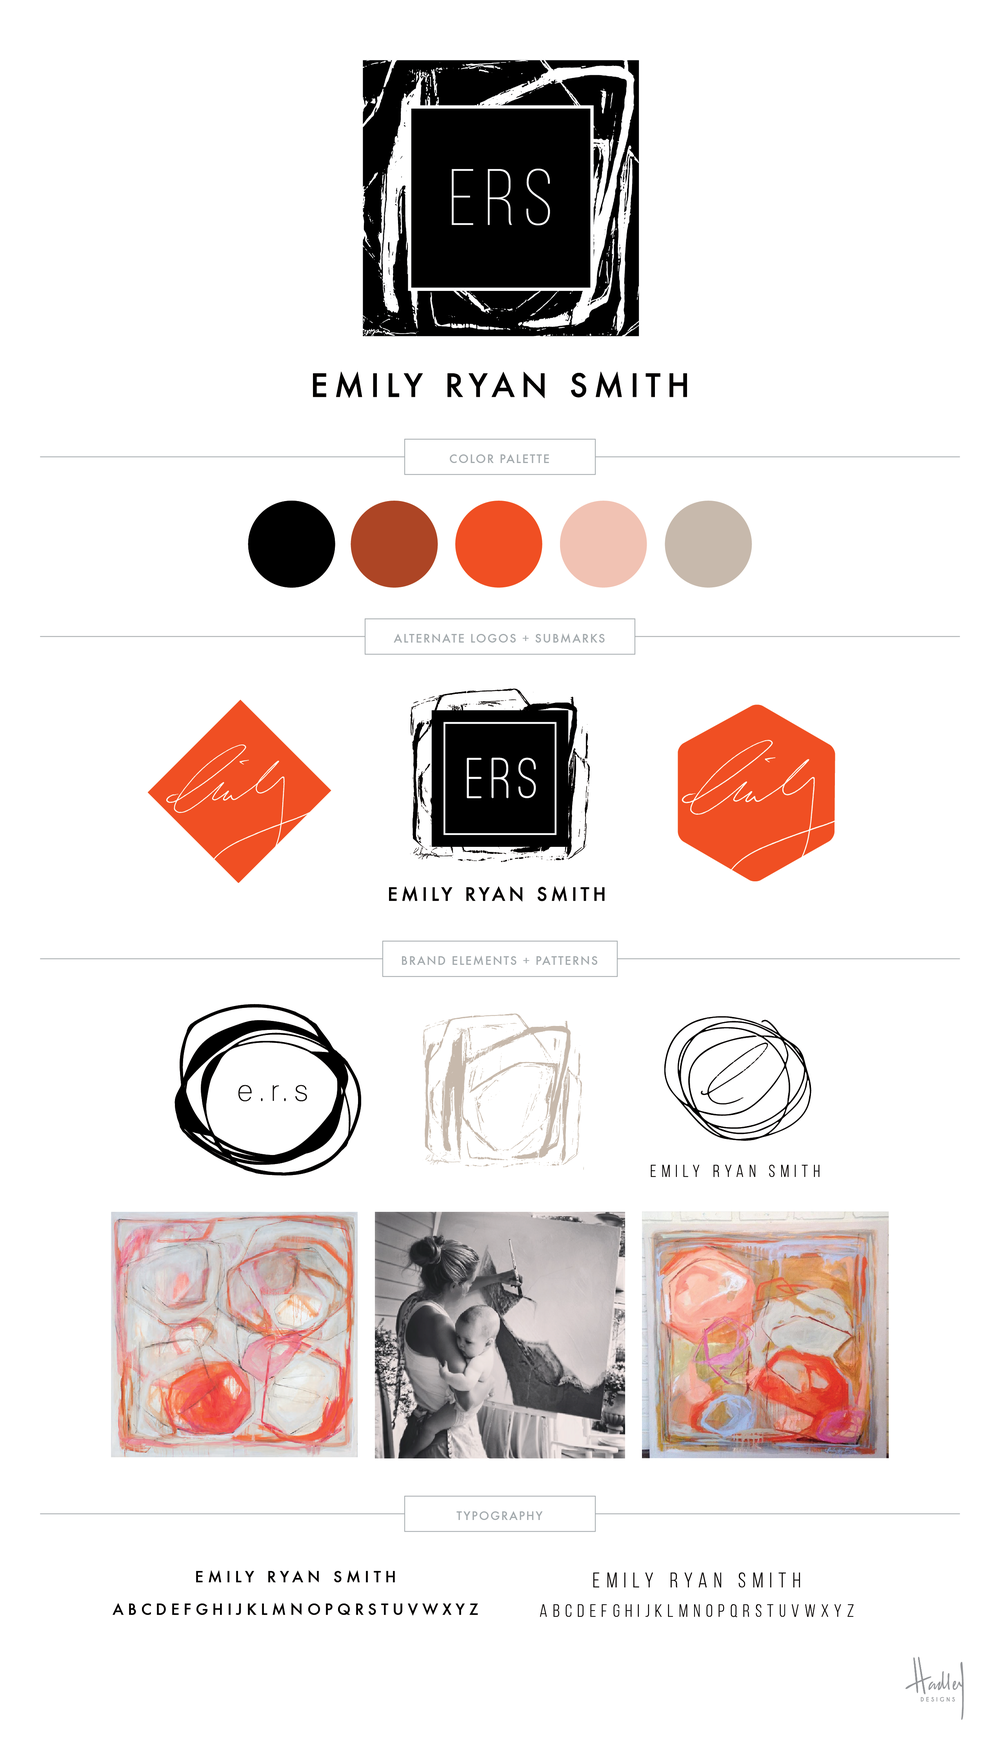 Emily Ryan Smith - Hadley Binion Designs